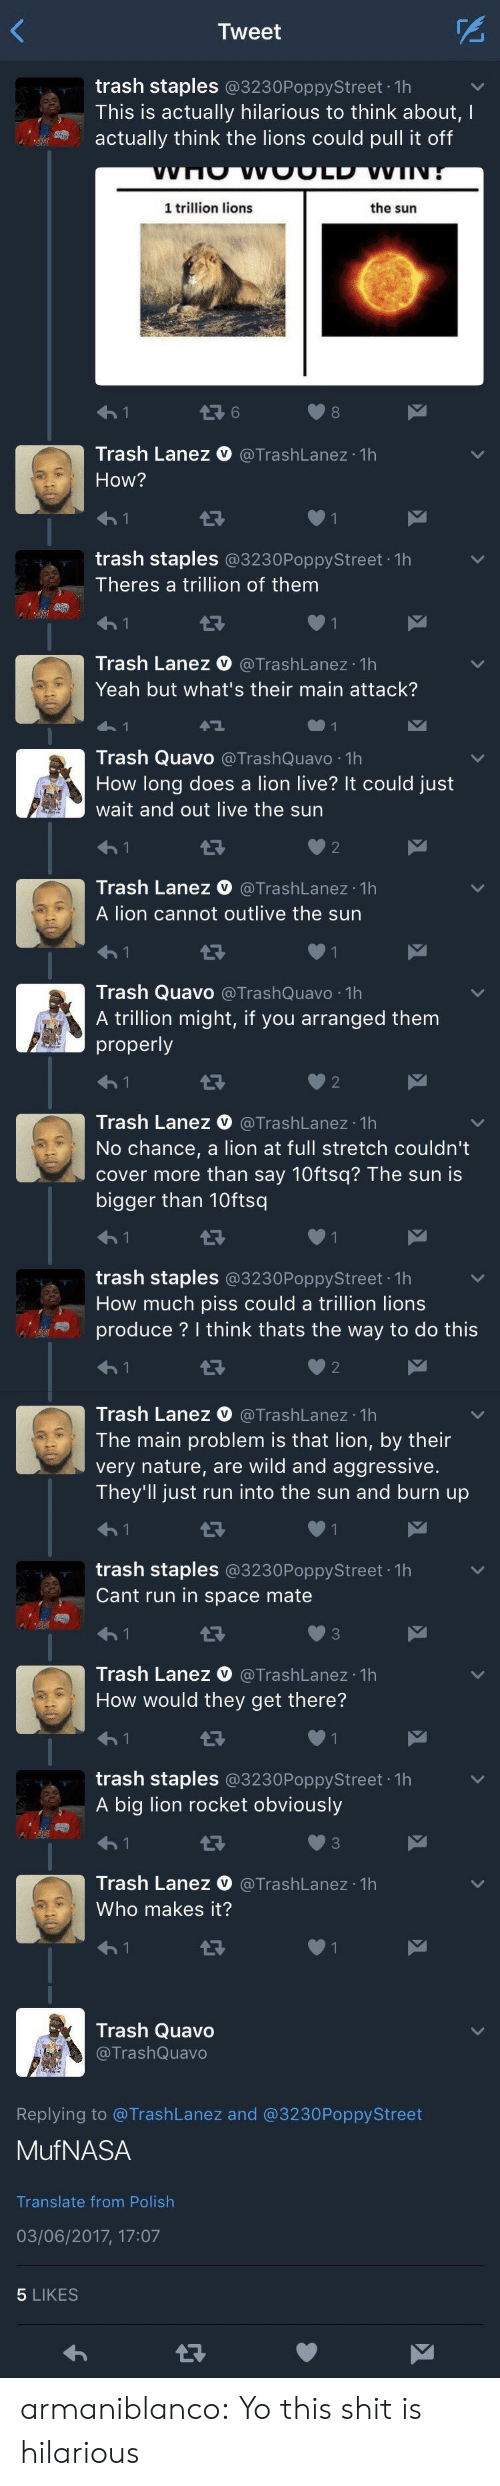 Polishable: Tweet  trash staples @3230PoppyStreet 1h  This is actually hilarious to think about, I  actually think the lions could pull it off  1 trillion lions  the sun  6  8  Trash Lanez V @TrashLanez 1h  How?  trash staples @3230PoppyStreet 1h  Theres a trillion of them  Trash Lanez @TrashLanez 1h  Yeah but what's their main attack?   Trash Quavo @TrashQuavo 1h  How long does a lion live? It could just  wait and out live the sun  2  Trash Lanez V @TrashLanez 1h  A lion cannot outlive the sun  Trash Quavo @TrashQuavo 1h  A trillion might, if you arranged them  properly  2  Trash Lanez V @TrashLanez 1h  No chance, a lion at full stretch couldn't  cover more than say 10ftsq? The sun is  bigger than 10ftsq  trash staples @3230PoppyStreet 1h  How much piss could a trillion lion:s  produce ? I think thats the way to do this  007 ,  2   Trash Lanez O @TrashLanez 1h  The main problem is that lion, by their  very nature, are wild and aggressive.  They'll just run into the sun and burn up  trash staples @3230PoppyStreet. 1h  Cant run in space mate  わ!  Trash Lanez @TrashLanez 1h  How would they get there?  ﹀  13  trash staples @3230PoppyStreet 1h  A big lion rocket obviously  Trash Lanez O@TrashLanez 1h  Who makes it?   Trash Quavo  @TrashQuavo  Replying to @TrashLanez and @3230PoppyStreet  MufNASA  Translate from Polish  03/06/2017, 17:07  5 LIKES armaniblanco: Yo this shit is hilarious